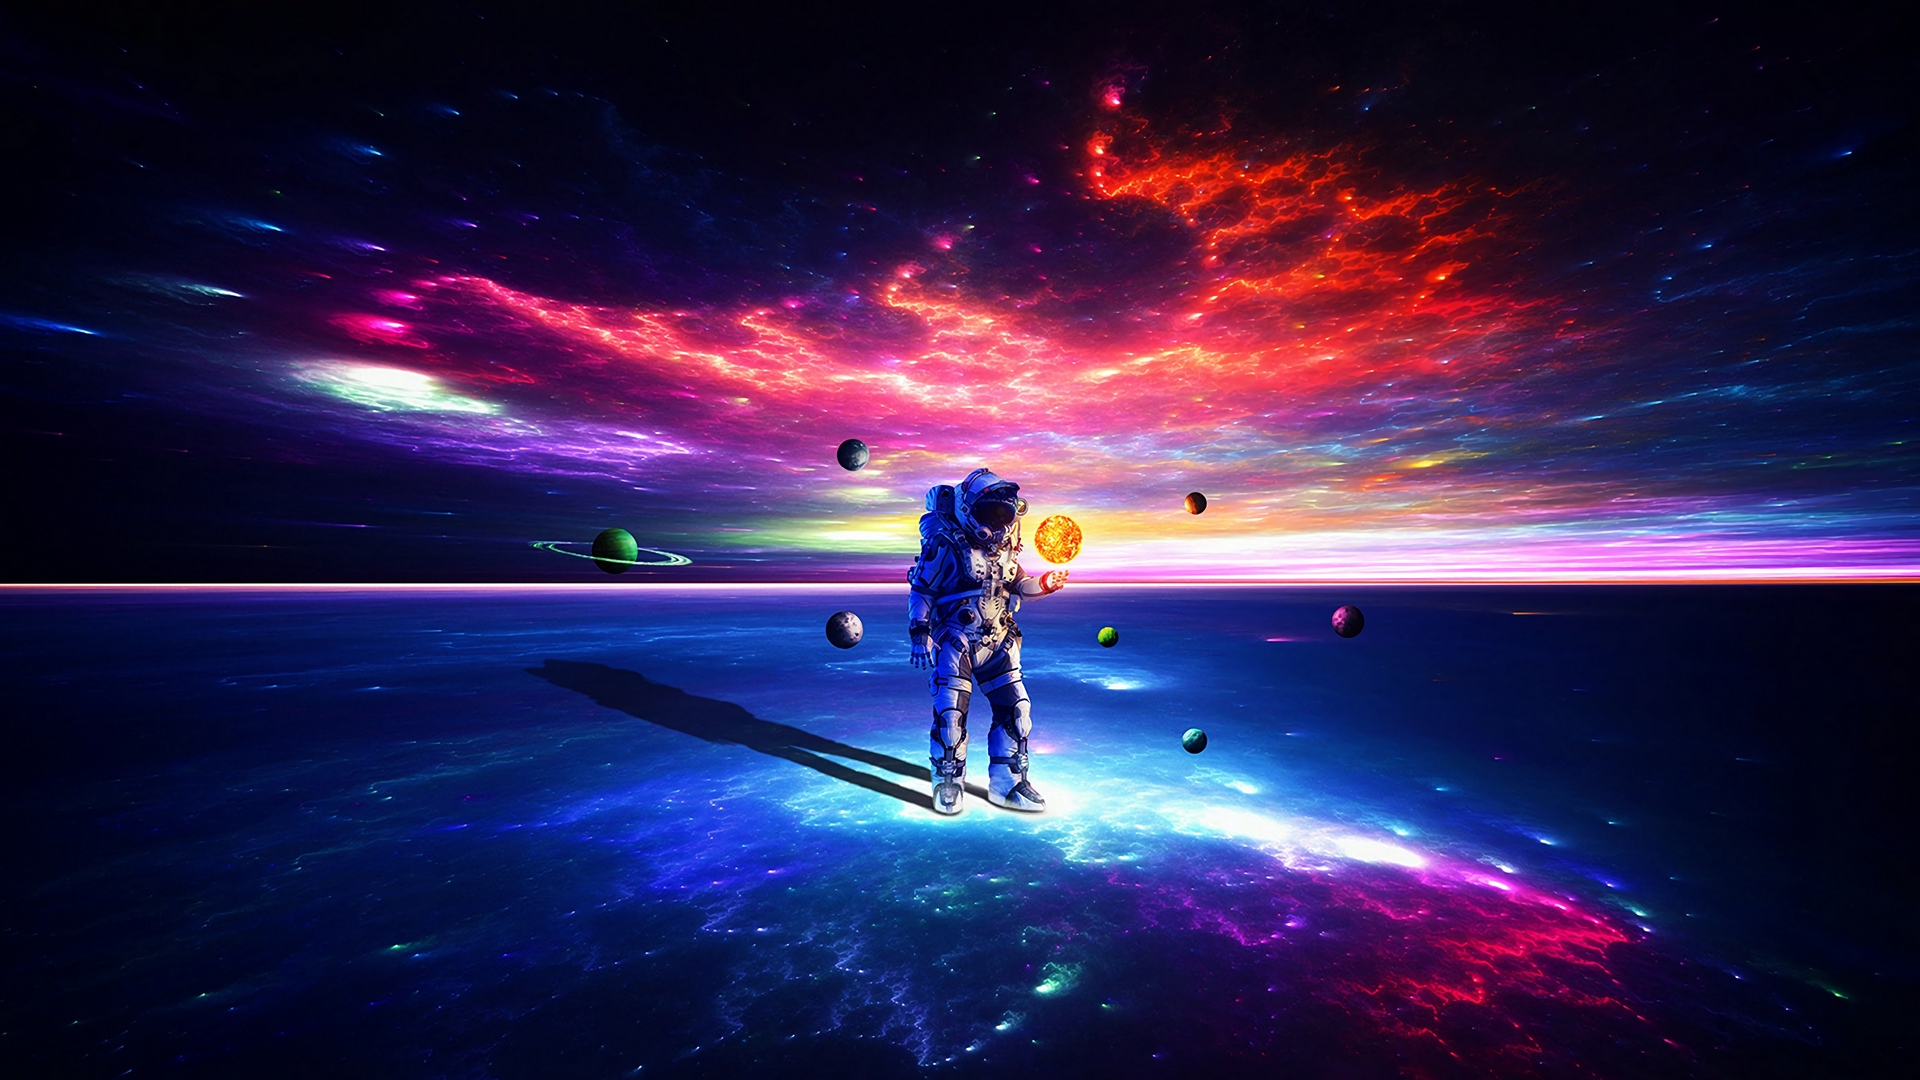 Wallpaper Of Astronaut Planet Sci Fi Space Background